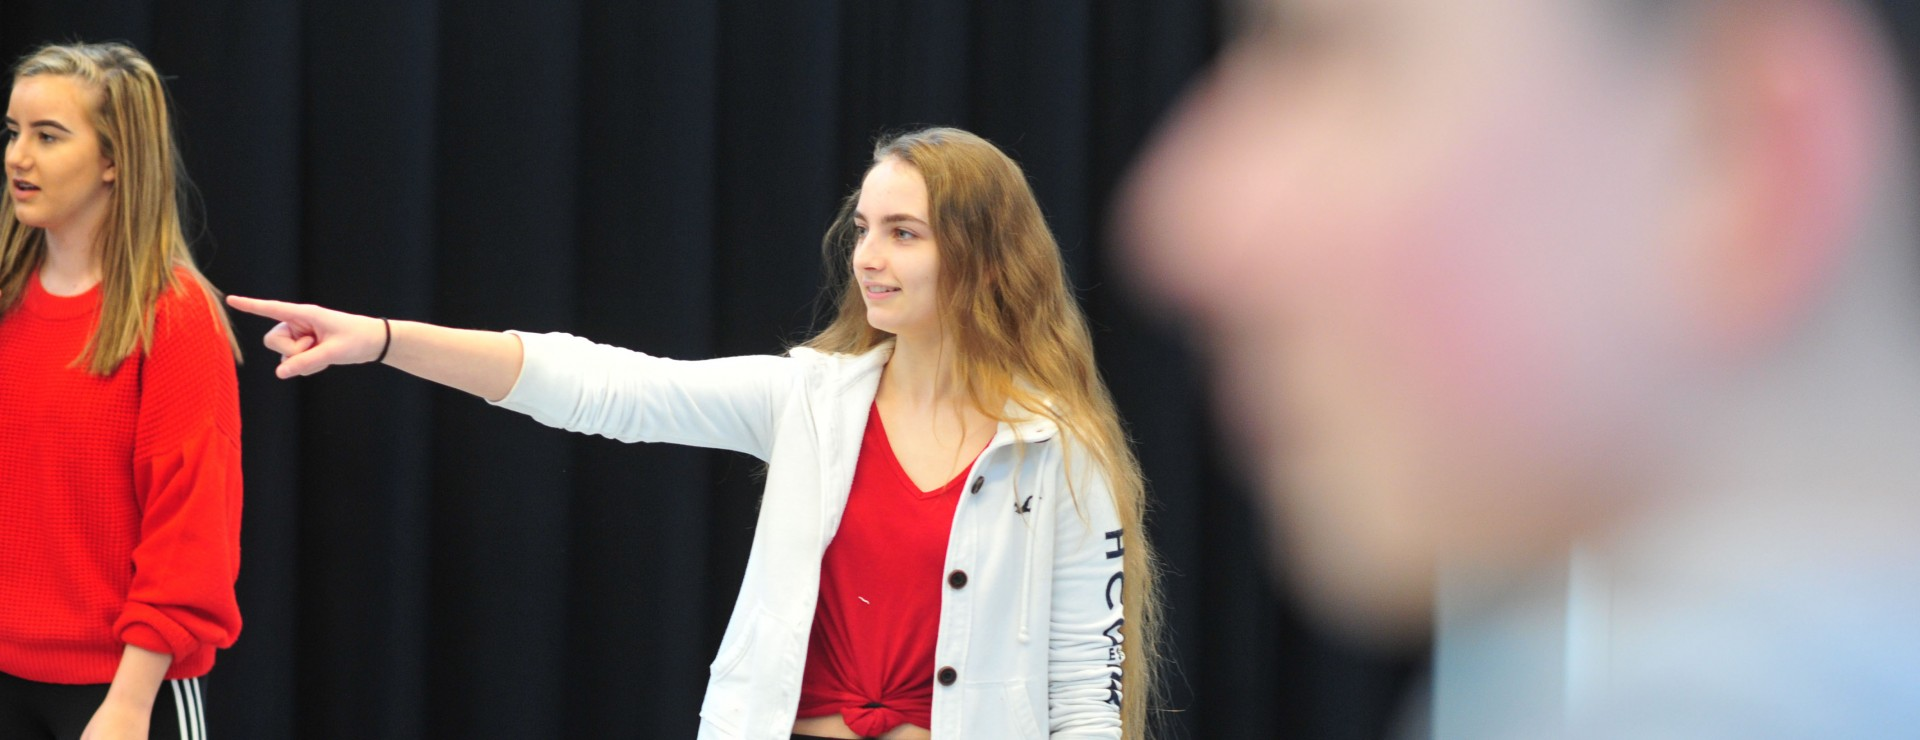 Get into Acting (for ages 15-17) Image